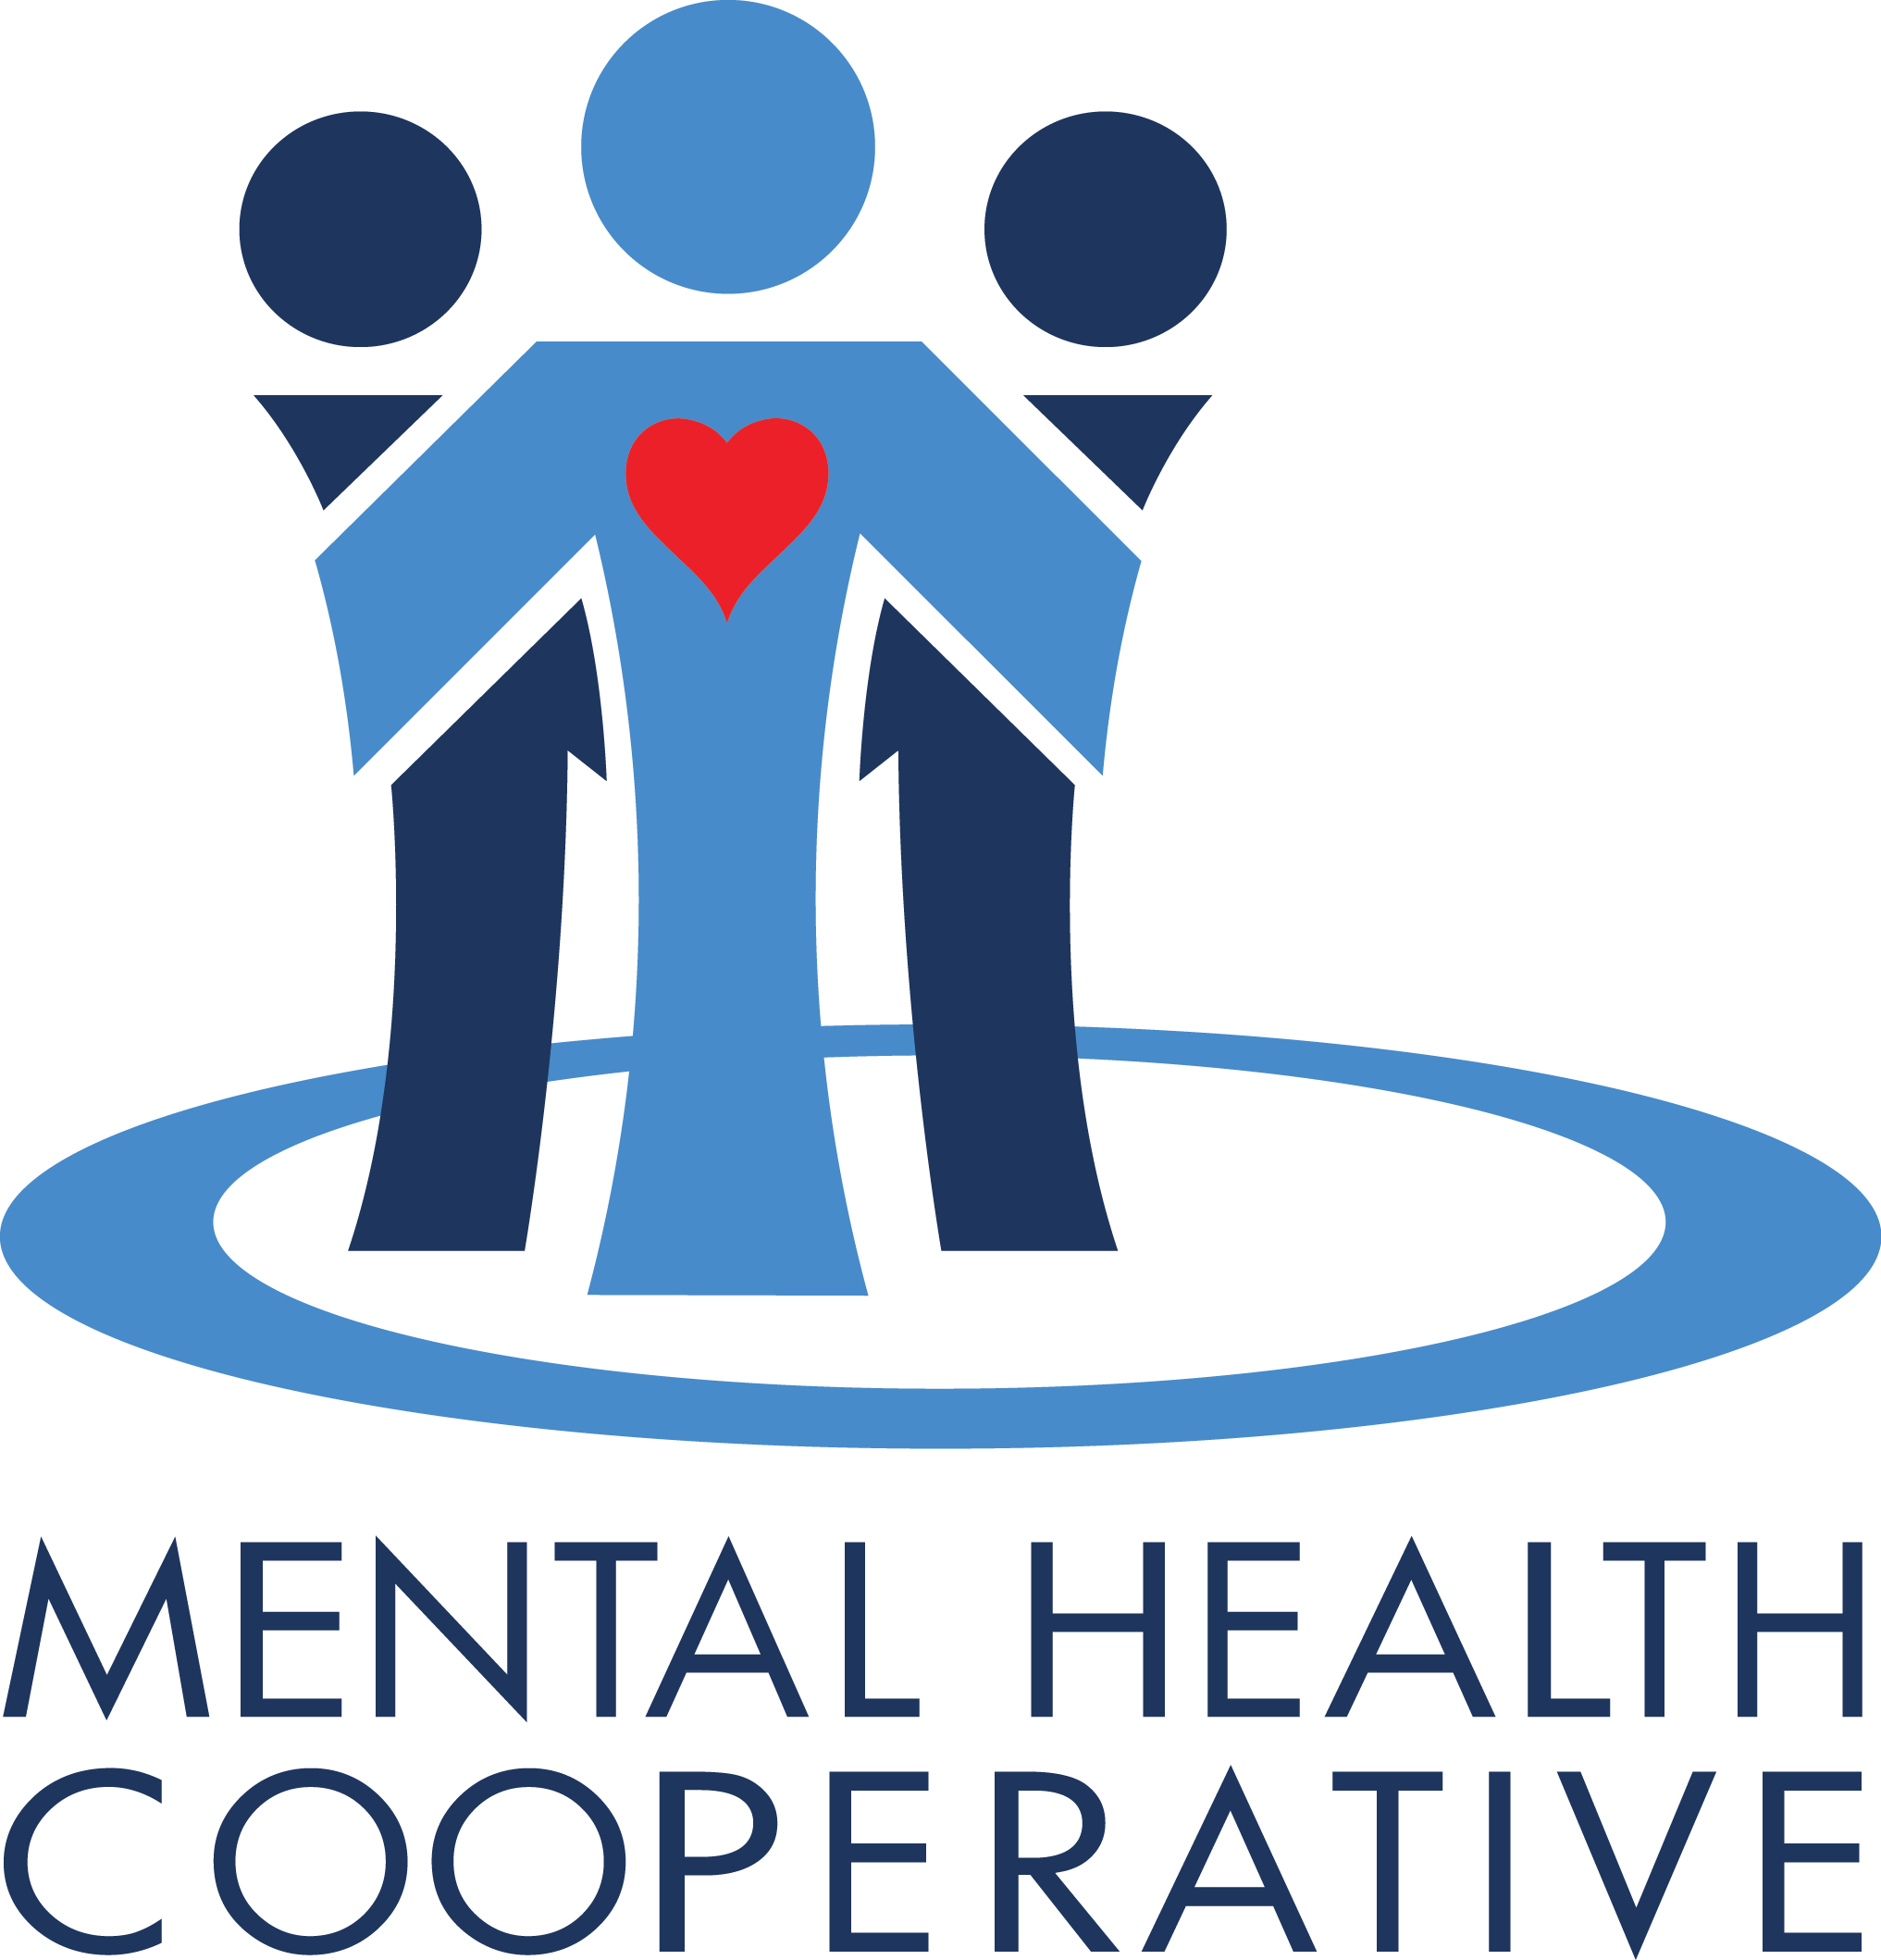 Mental Health Coopertive